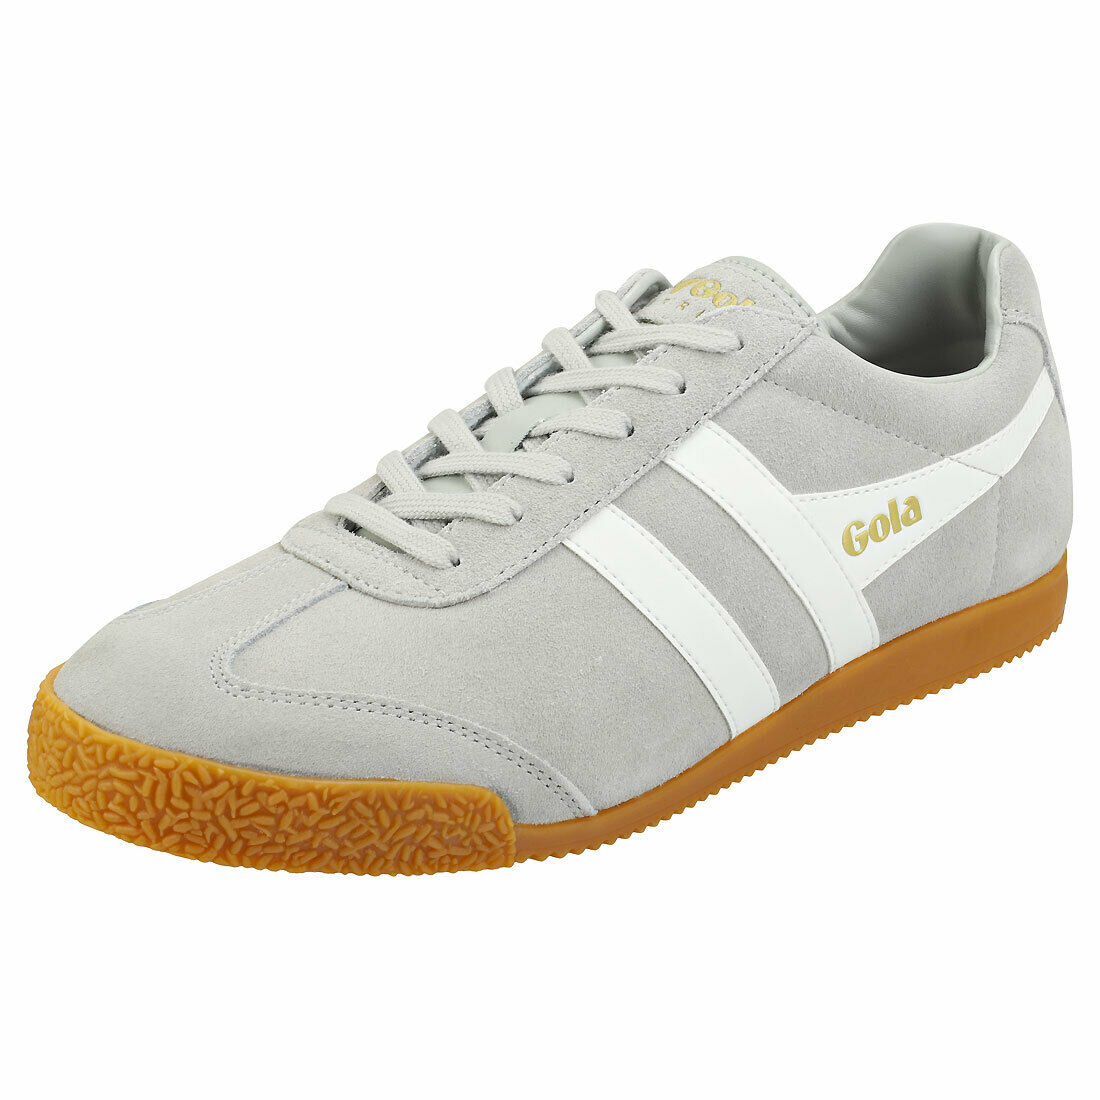 Gola Harrier Mens Light grau Weiß Suede Casual Trainers